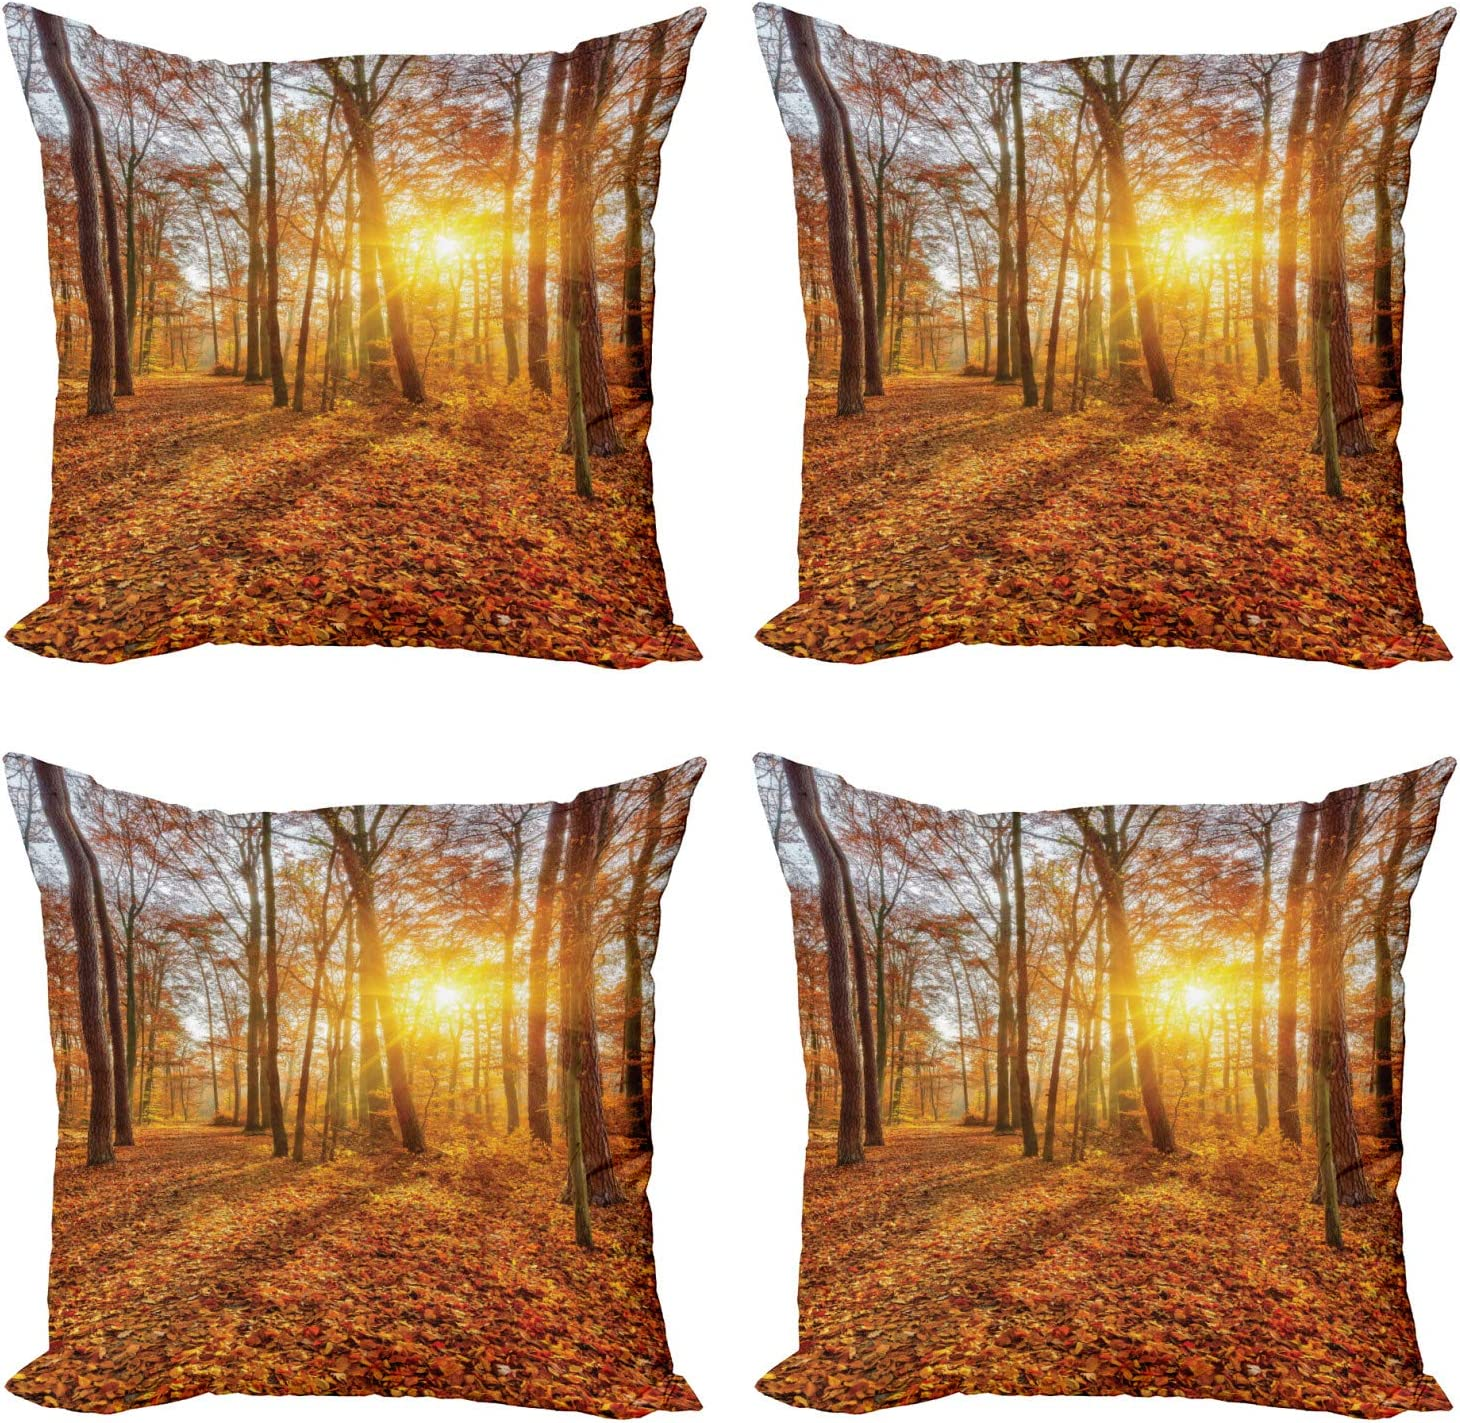 Abakuhaus Forest Cushion Cover Set Of 4 Foggy Sunset Sunbeams Modern Double Sided Digital Print Microfibre Multi Coloured 40 Cm Amazon Co Uk Kitchen Home